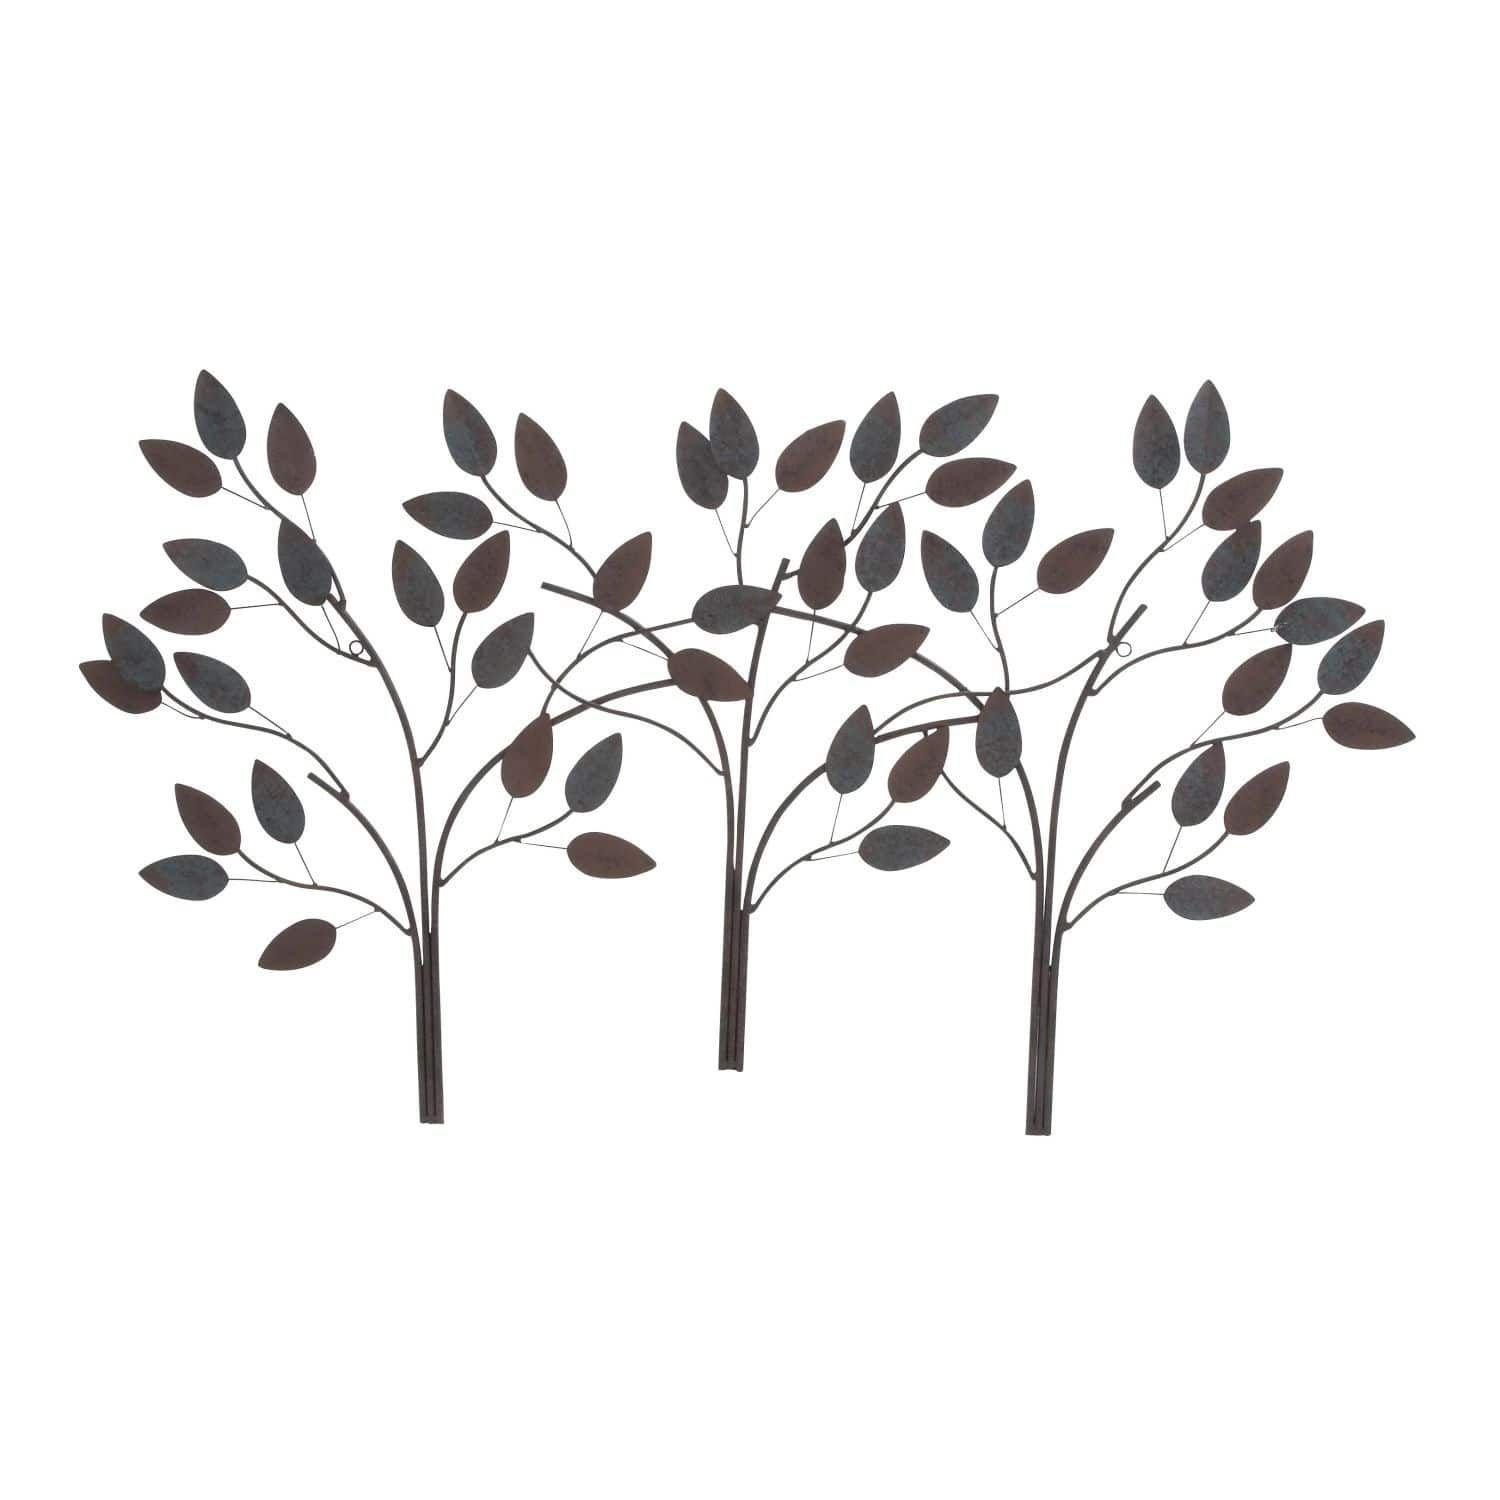 Studio 350 Metal Leaf Wall Decor 48 Inches Wide, 27 Inches within Desford Leaf Wall Decor (Image 27 of 30)